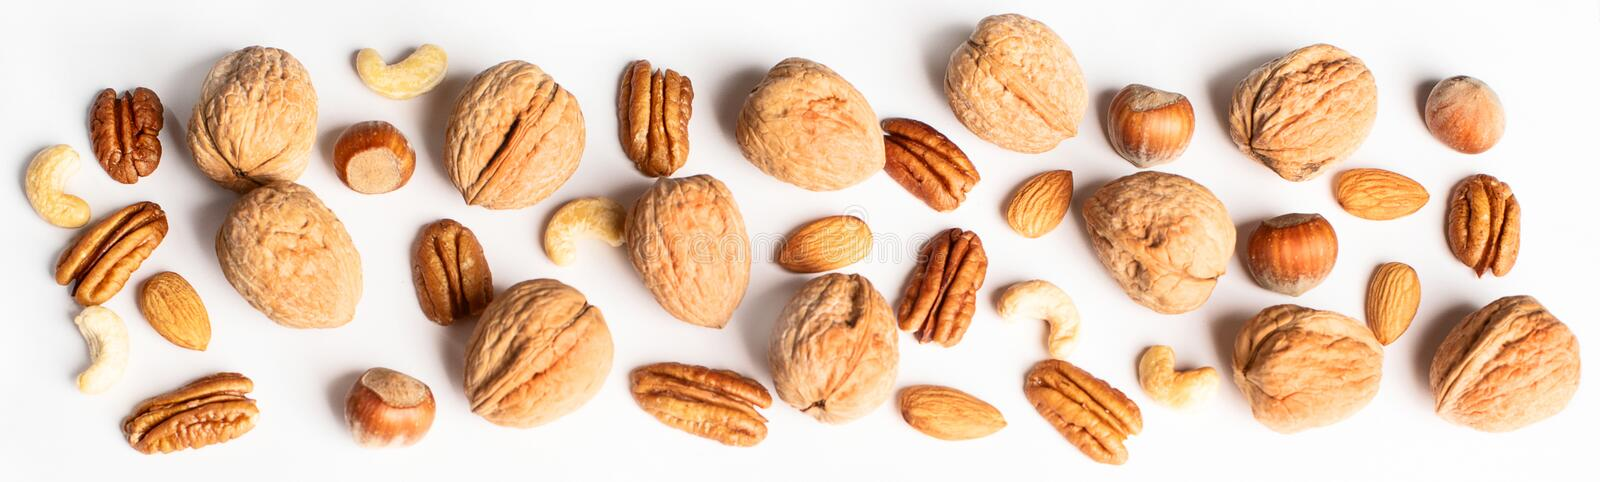 Pattern of nuts mix. Top view royalty free stock image